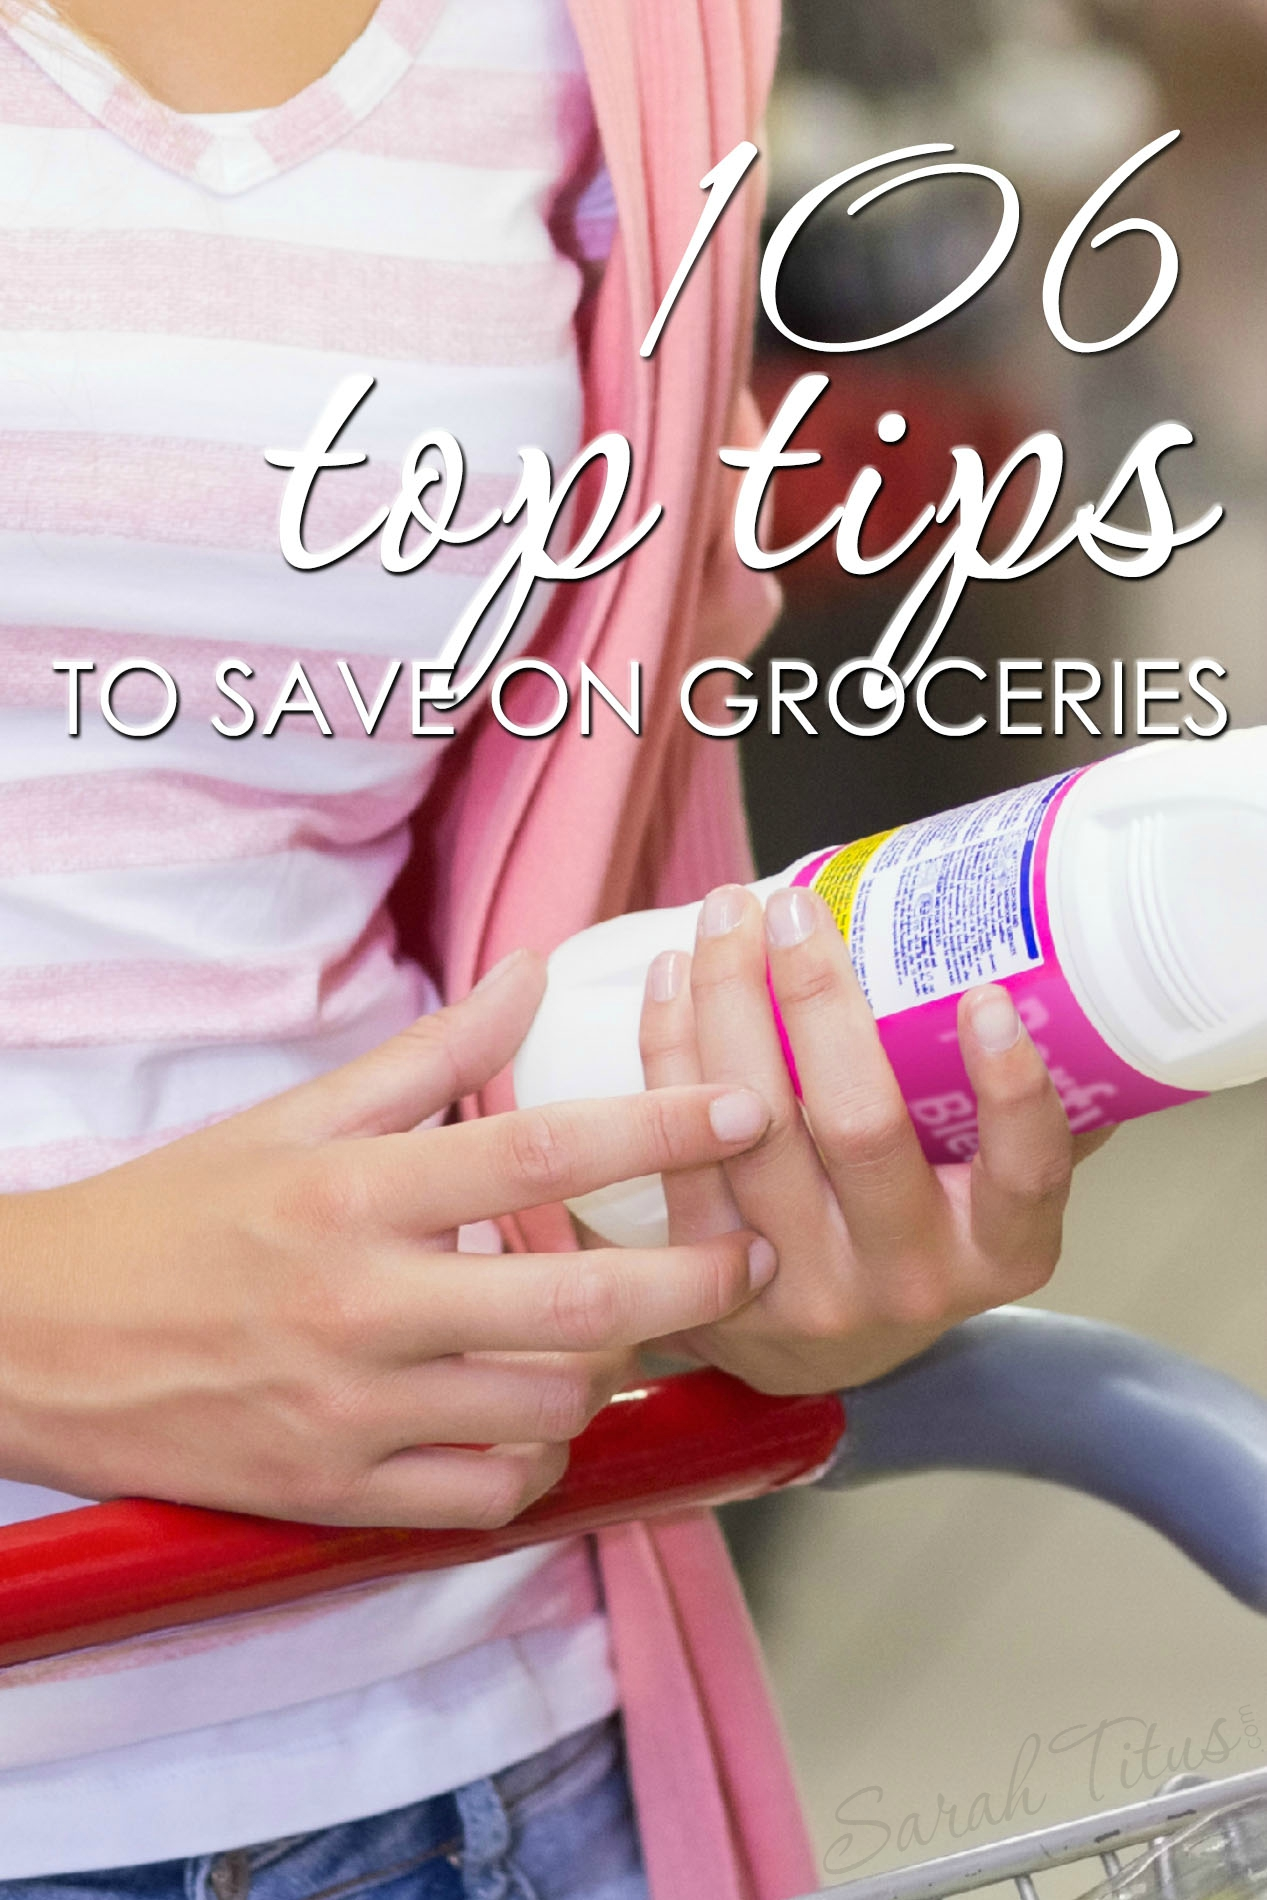 There are probably a gazillion ways to save money on groceries, but in scouring the internet, here are the 106 top tips to save on groceries, one of which was featured on the Rachael Ray show!